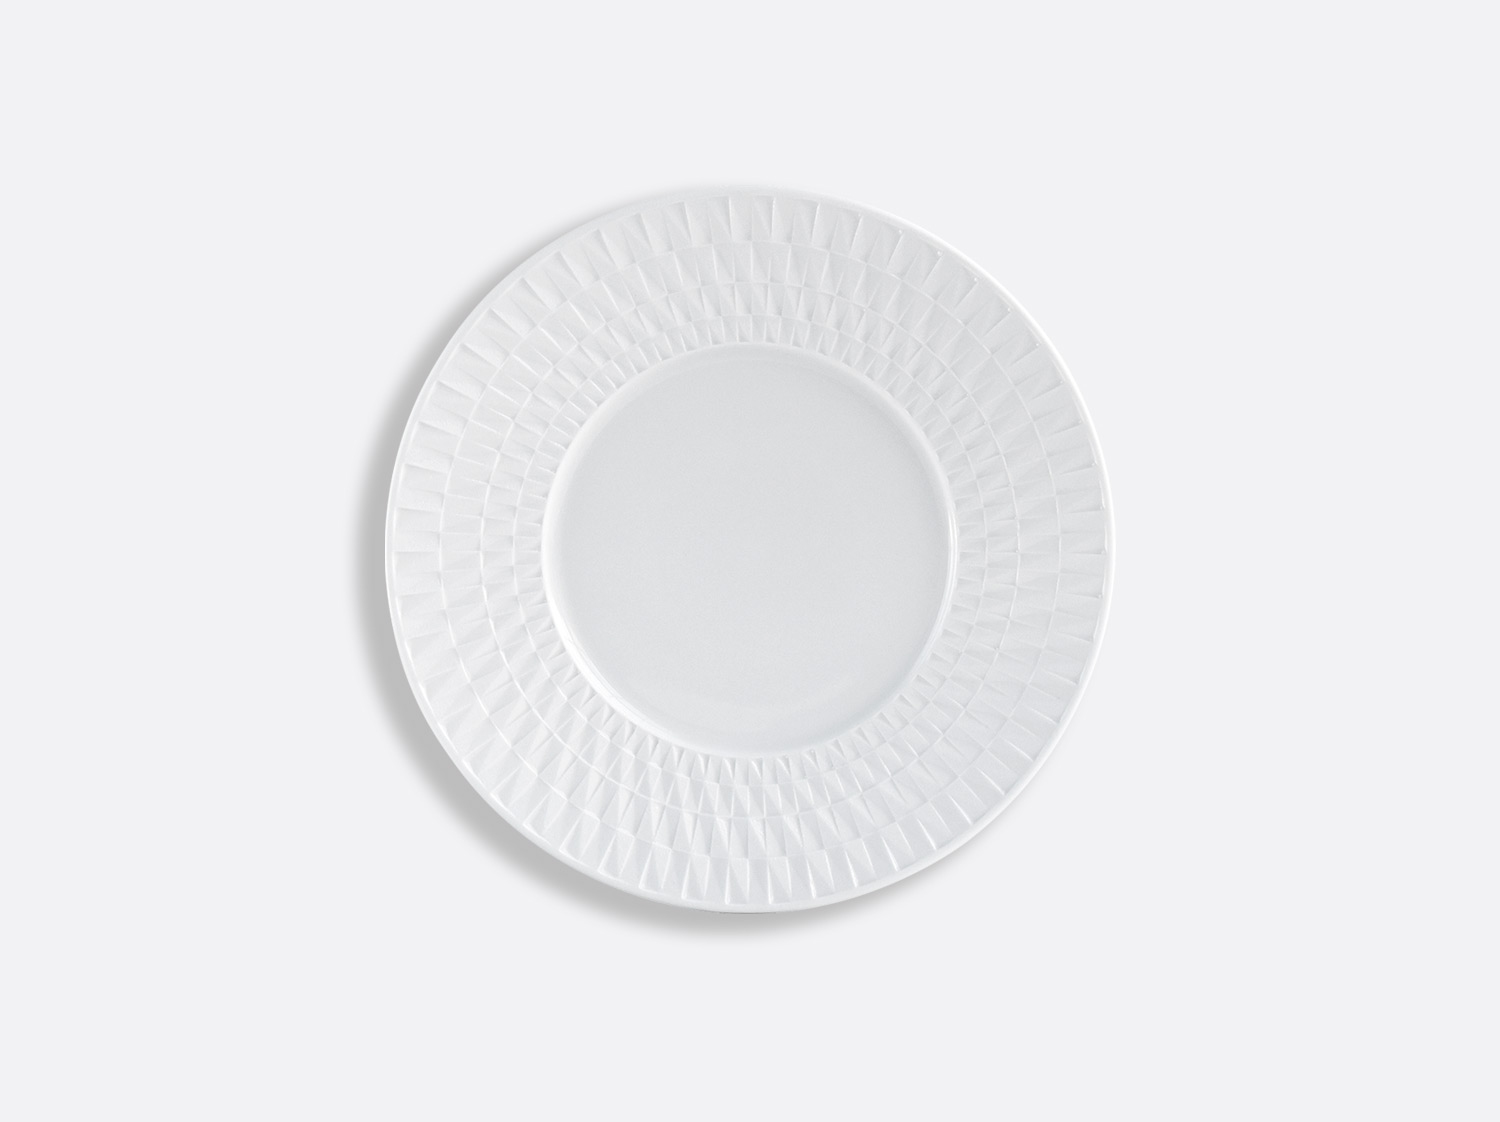 Assiette à pain 16 cm en porcelaine de la collection Twist Bernardaud